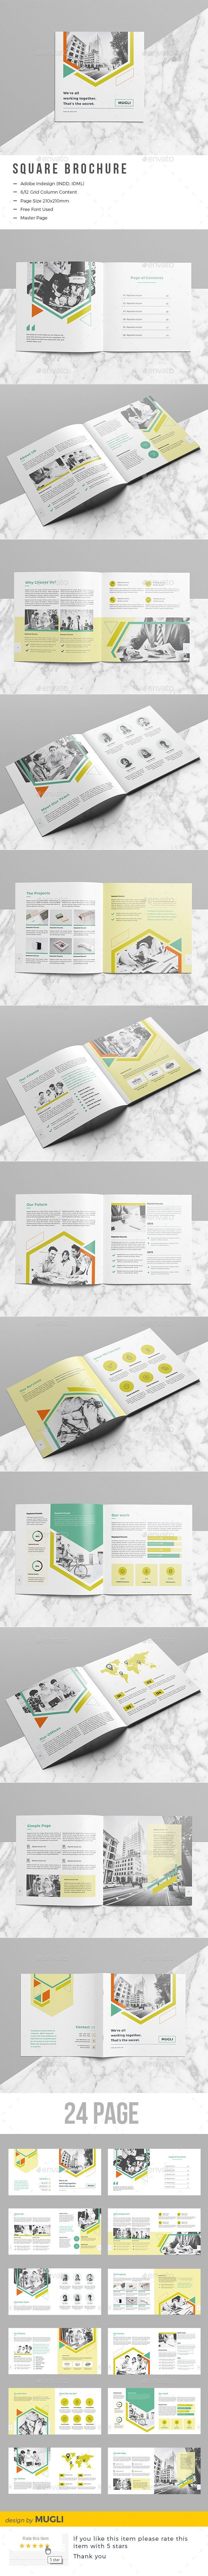 Square Brochure — InDesign INDD #review #agency • Download ➝ https://graphicriver.net/item/square-brochure/19638650?ref=pxcr